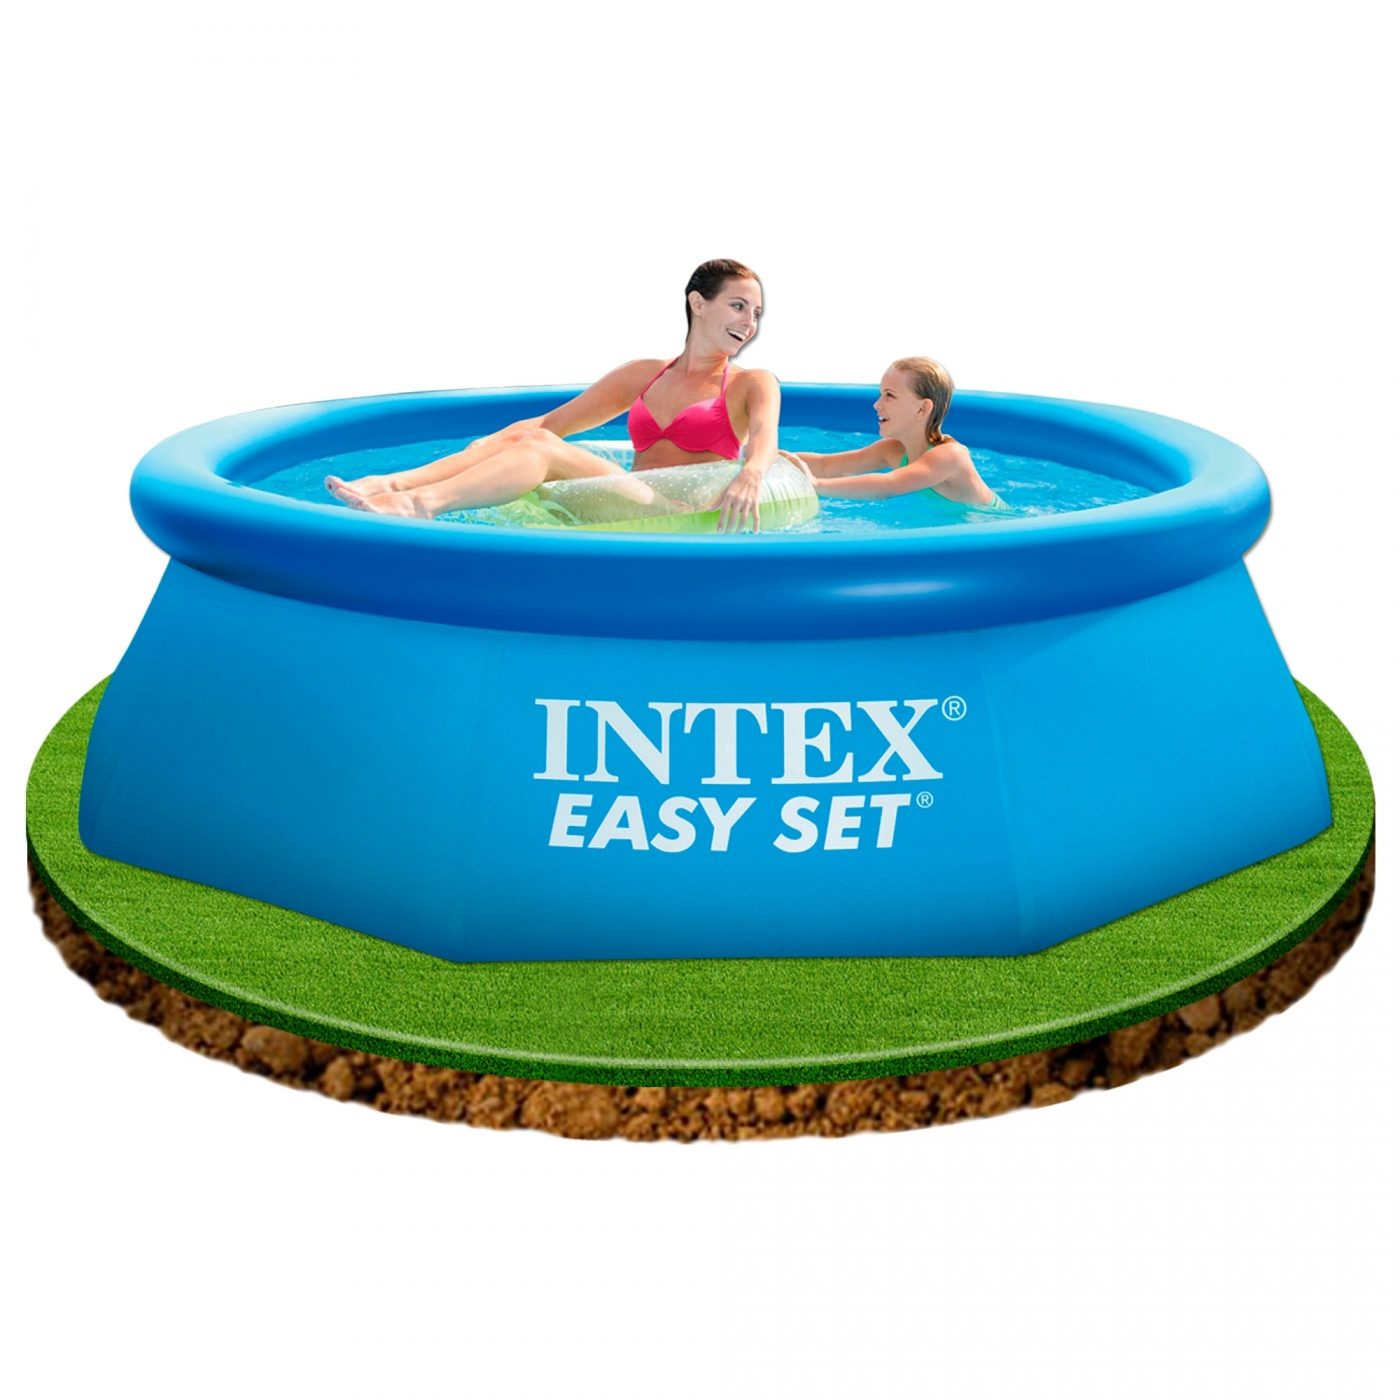 Intex Piscinas Acessorios Piscina Hexagonal Easy Set 244 X 76 Cm Intex Em Planeta Huerto